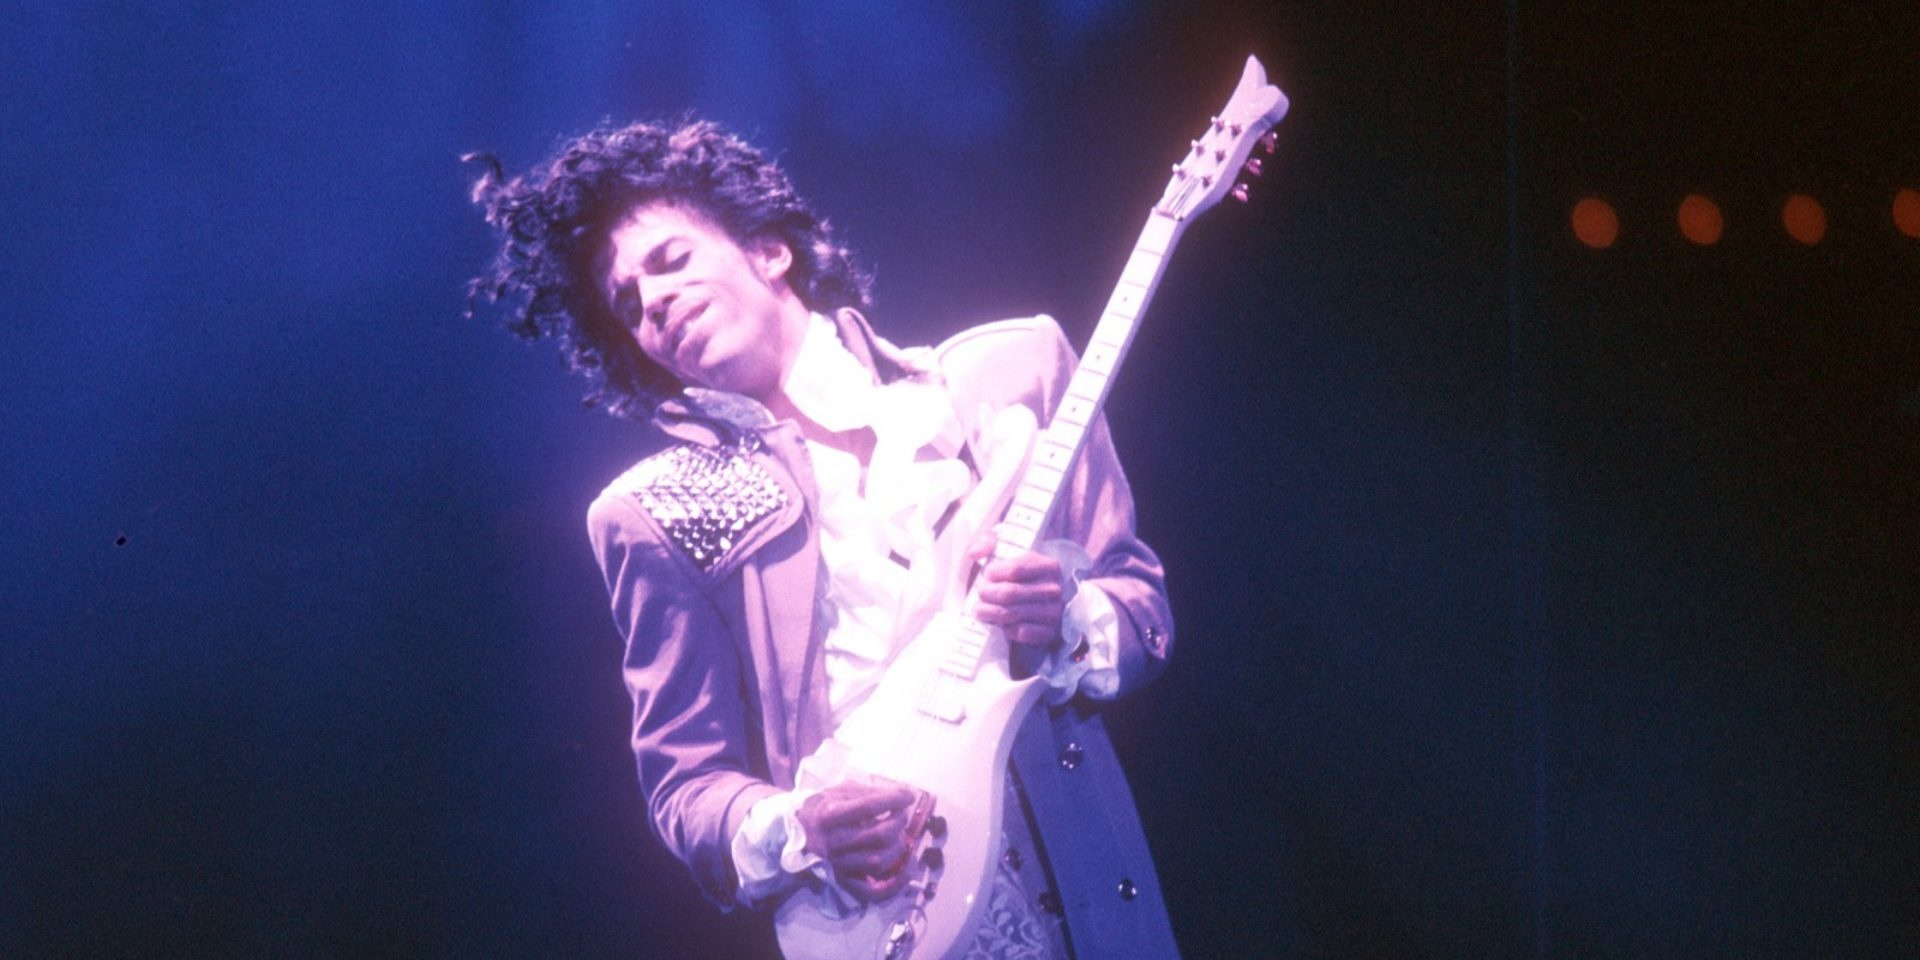 Prince's memoirs, The Beautiful Ones, will be published in October